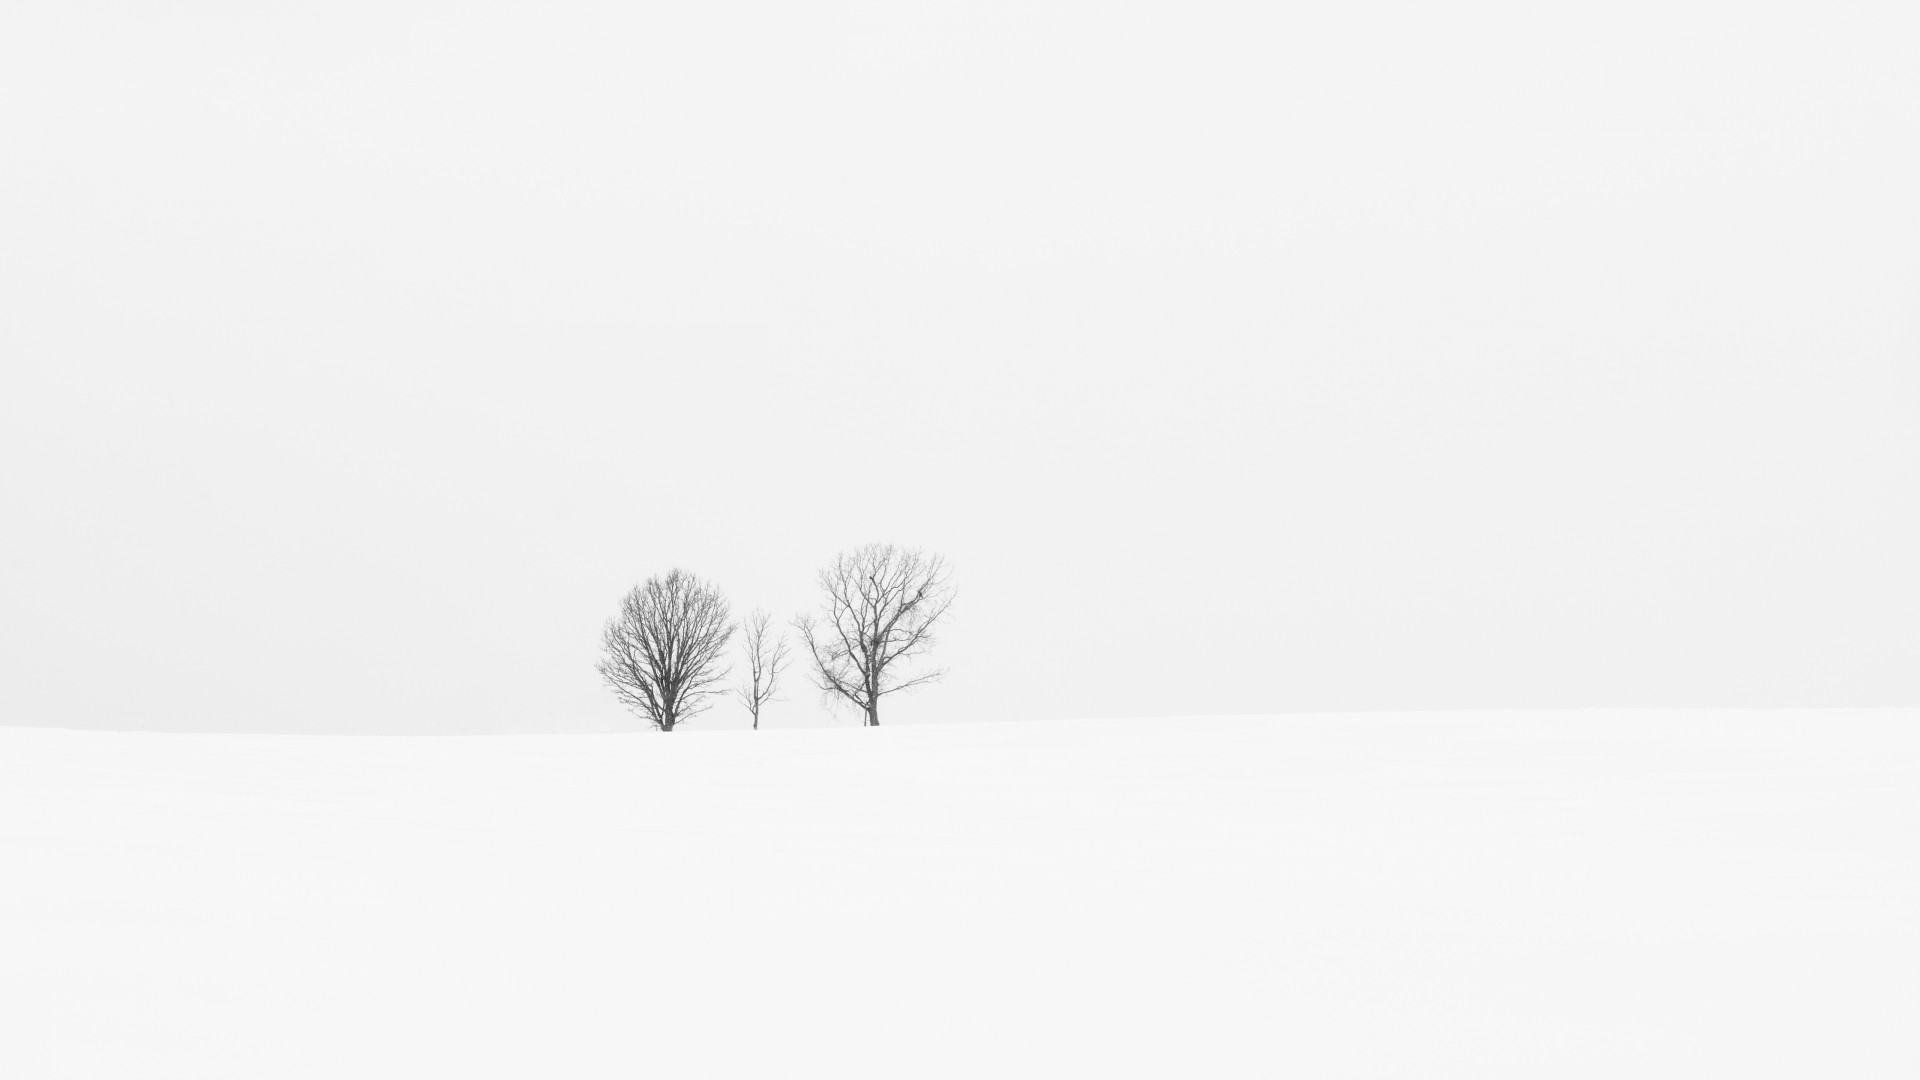 A Small Family of Lonely Trees 4K Minimalist Nature ...